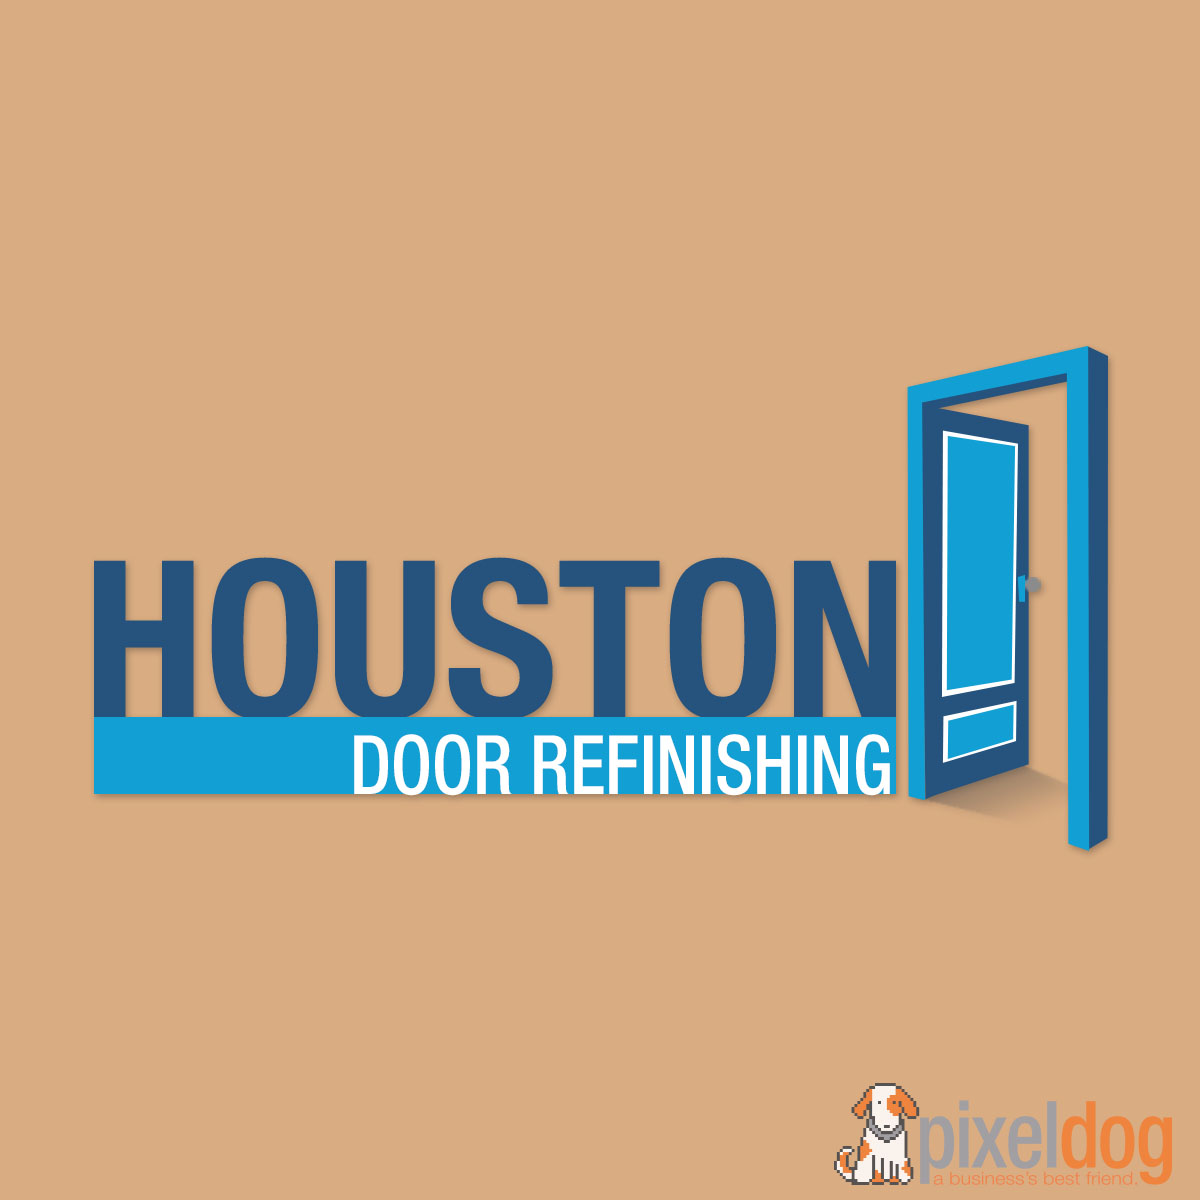 Houston Door Refinishing (Company)